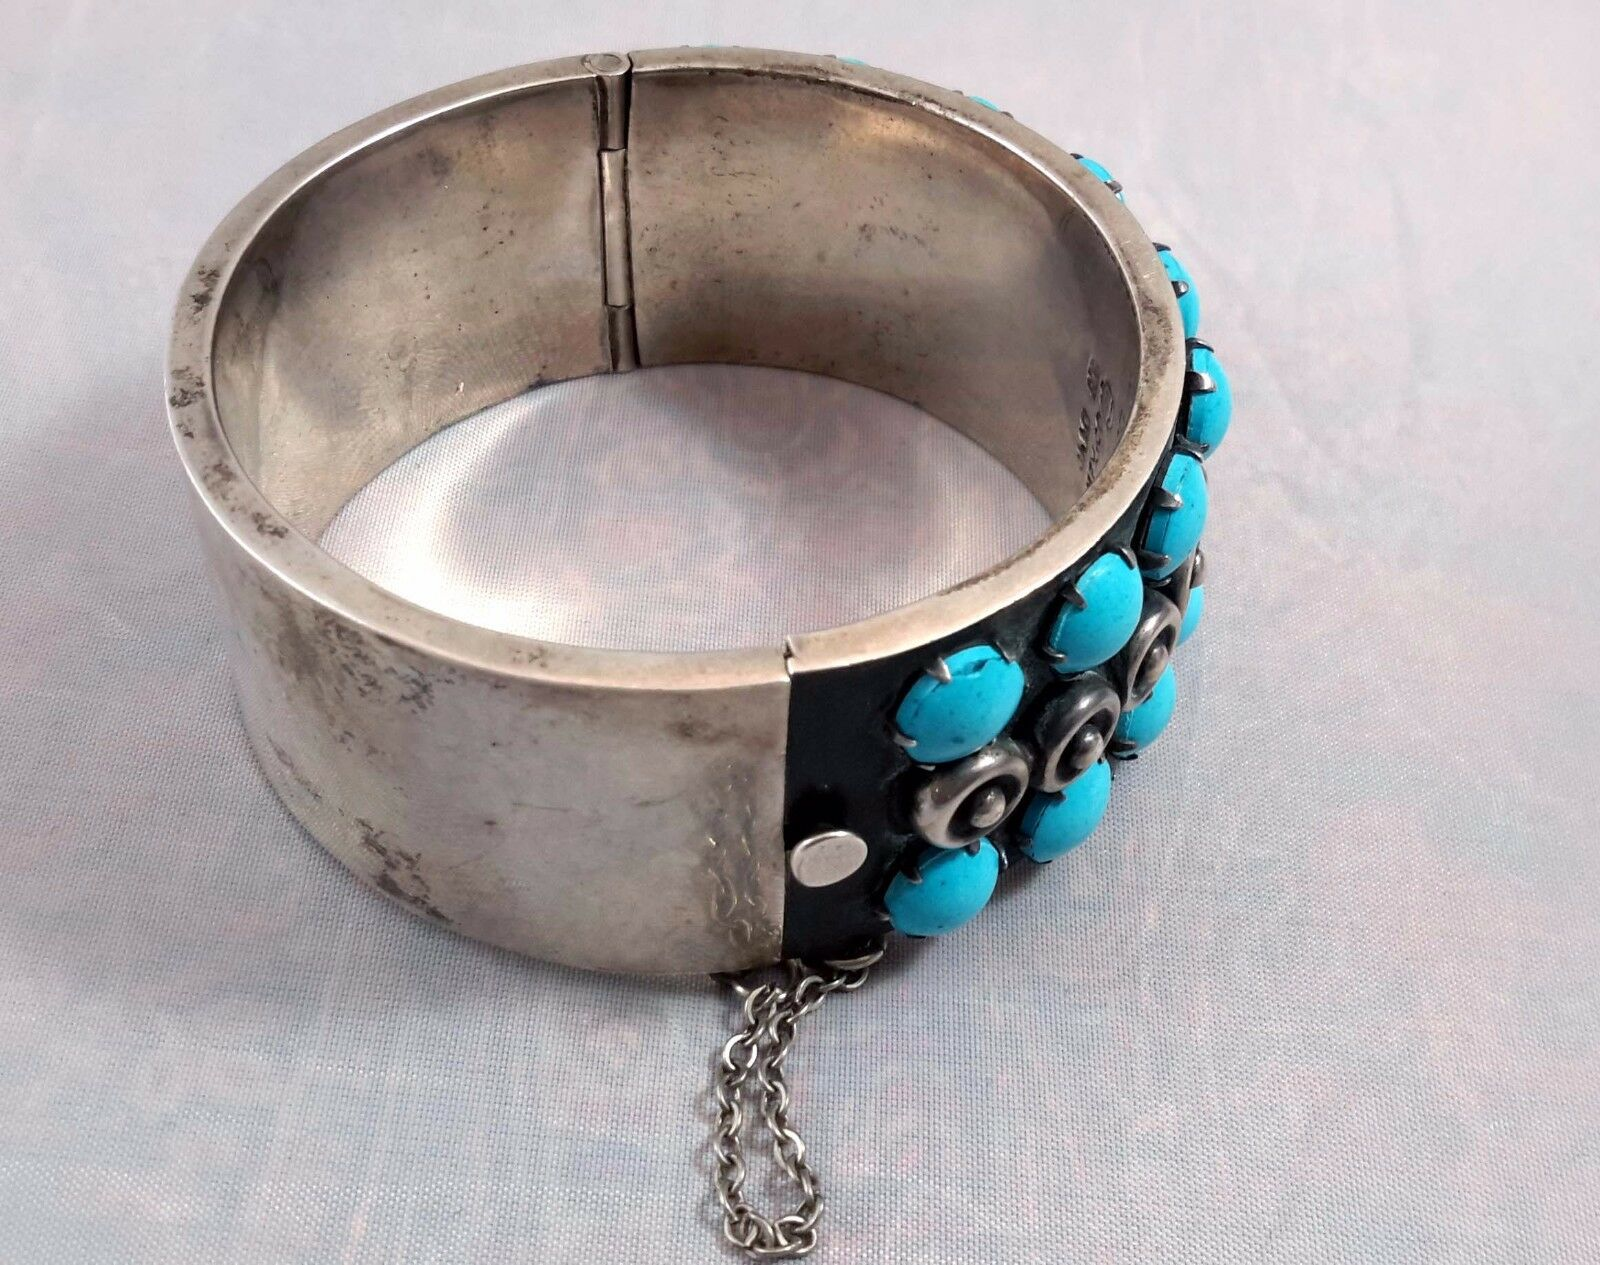 MID CENTURY MODERN STERLING SILVER TURQUOISE BRA… - image 3